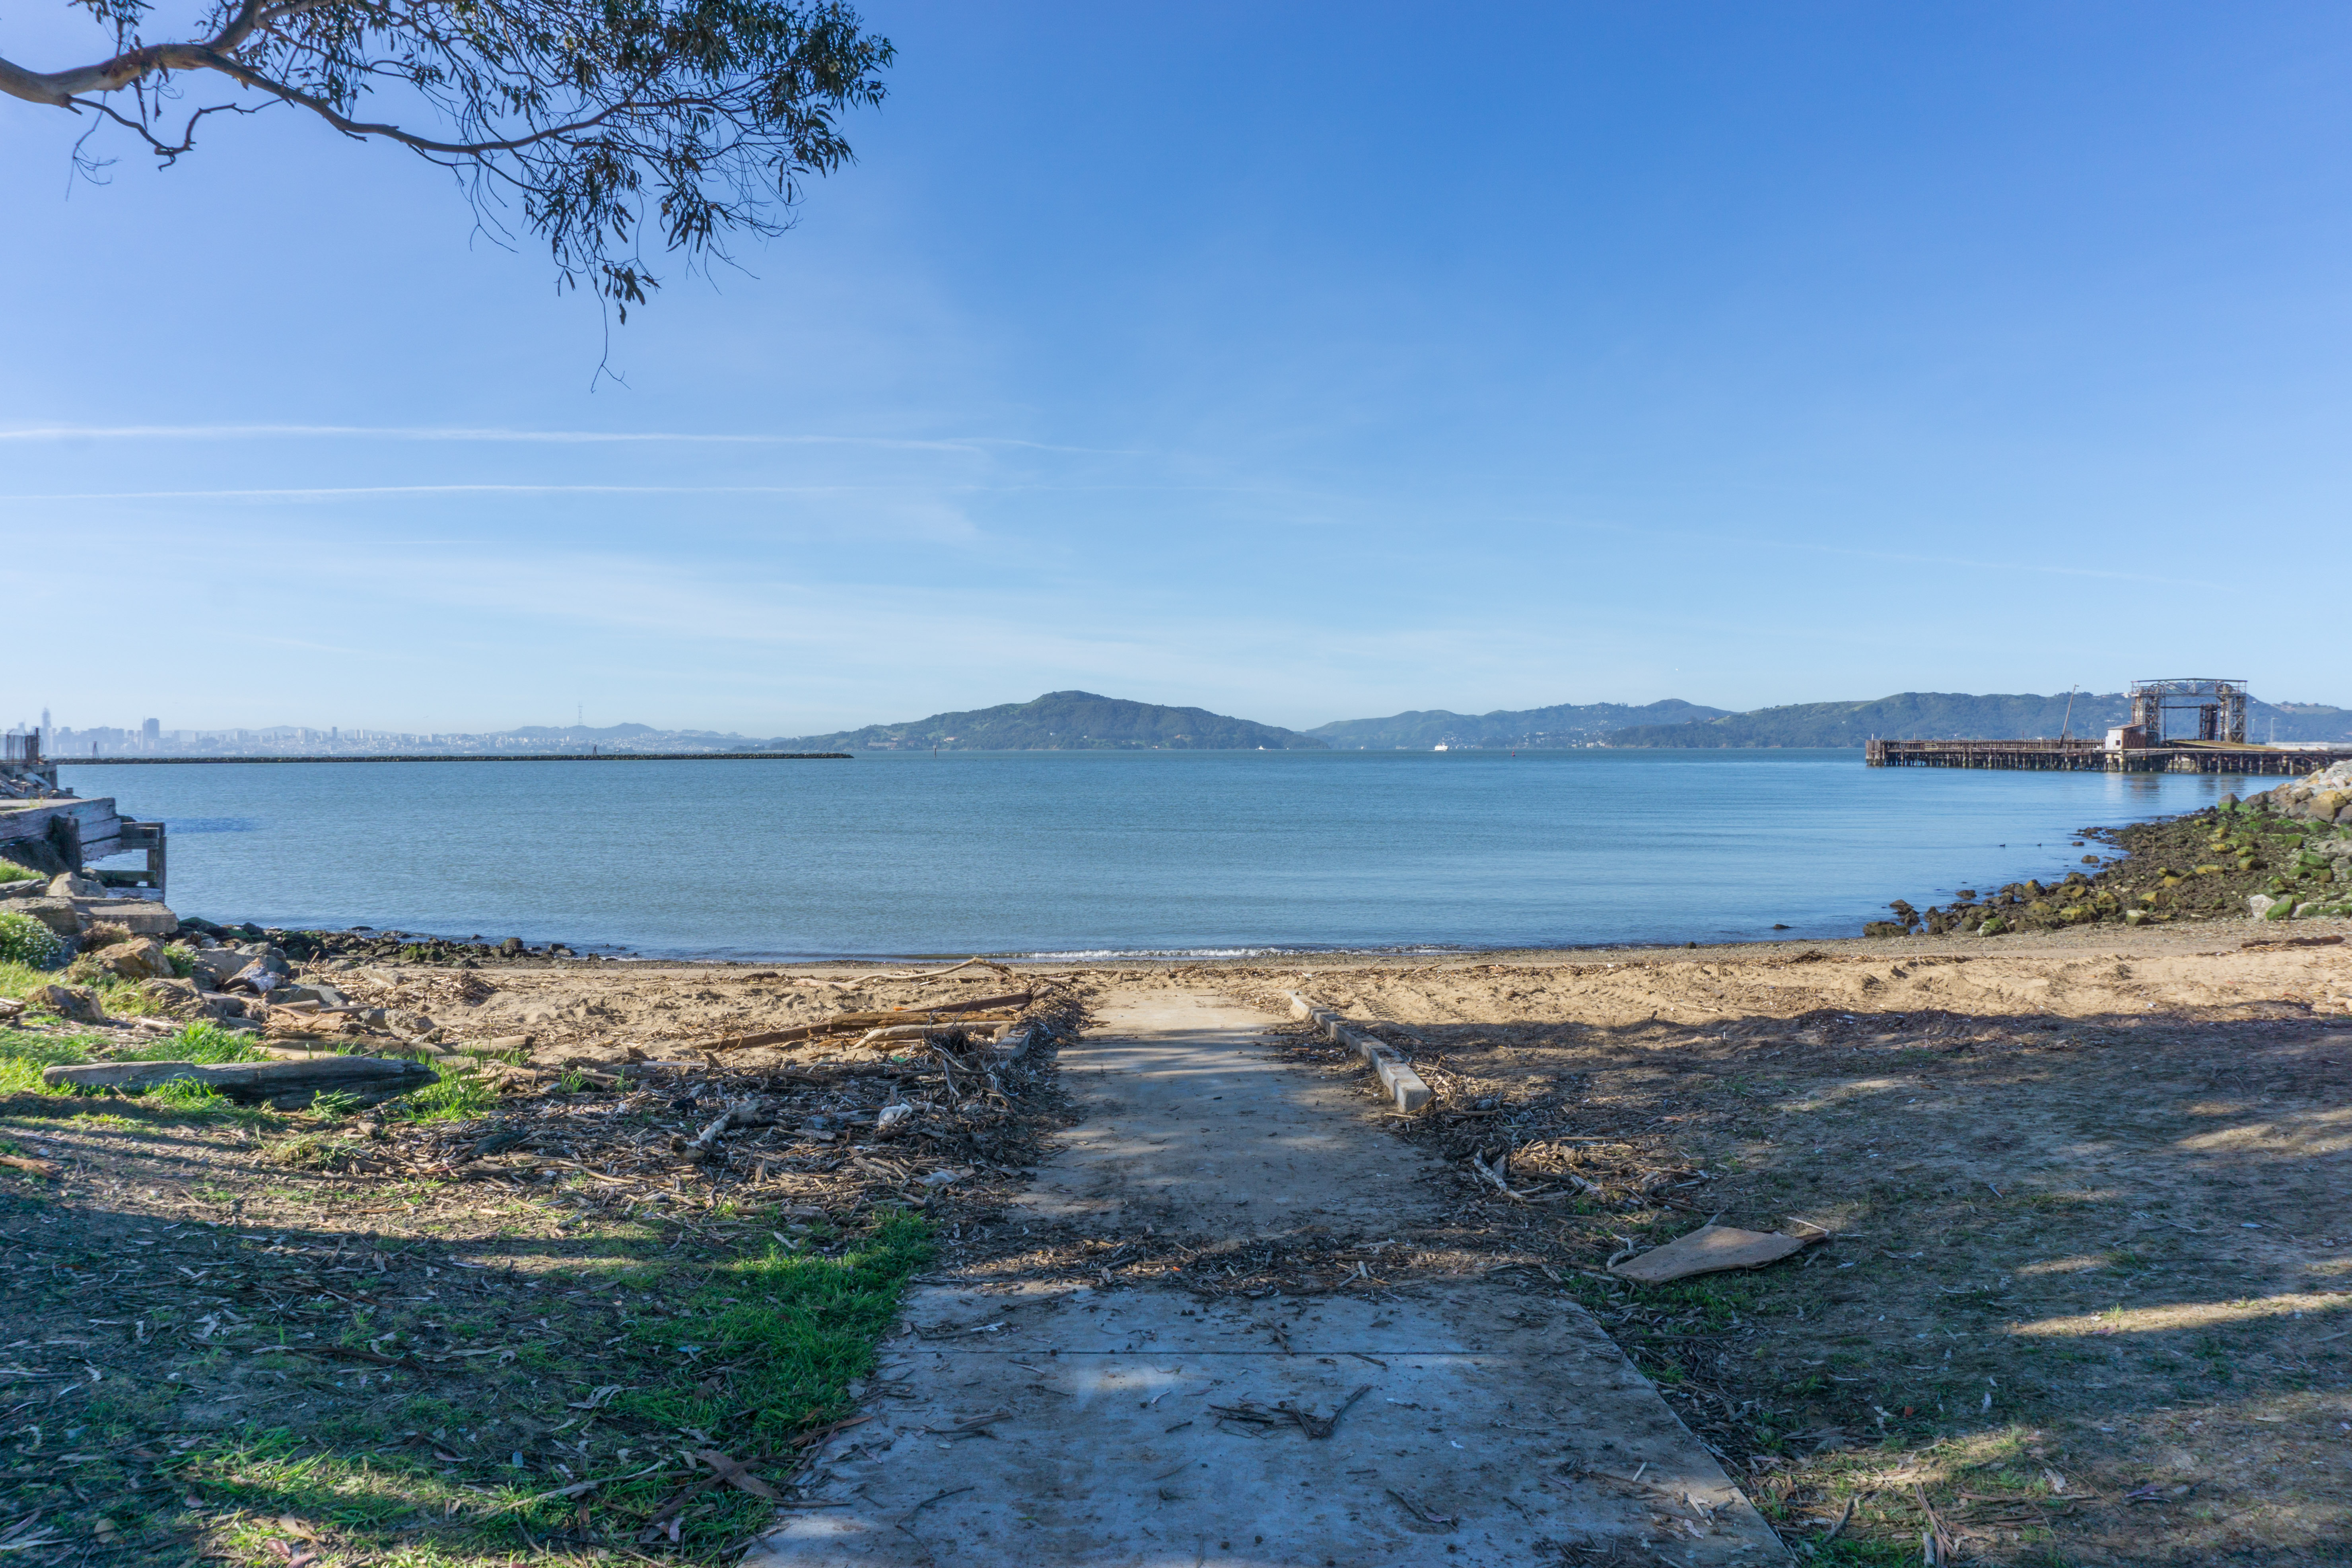 paved path ends at sandy beach